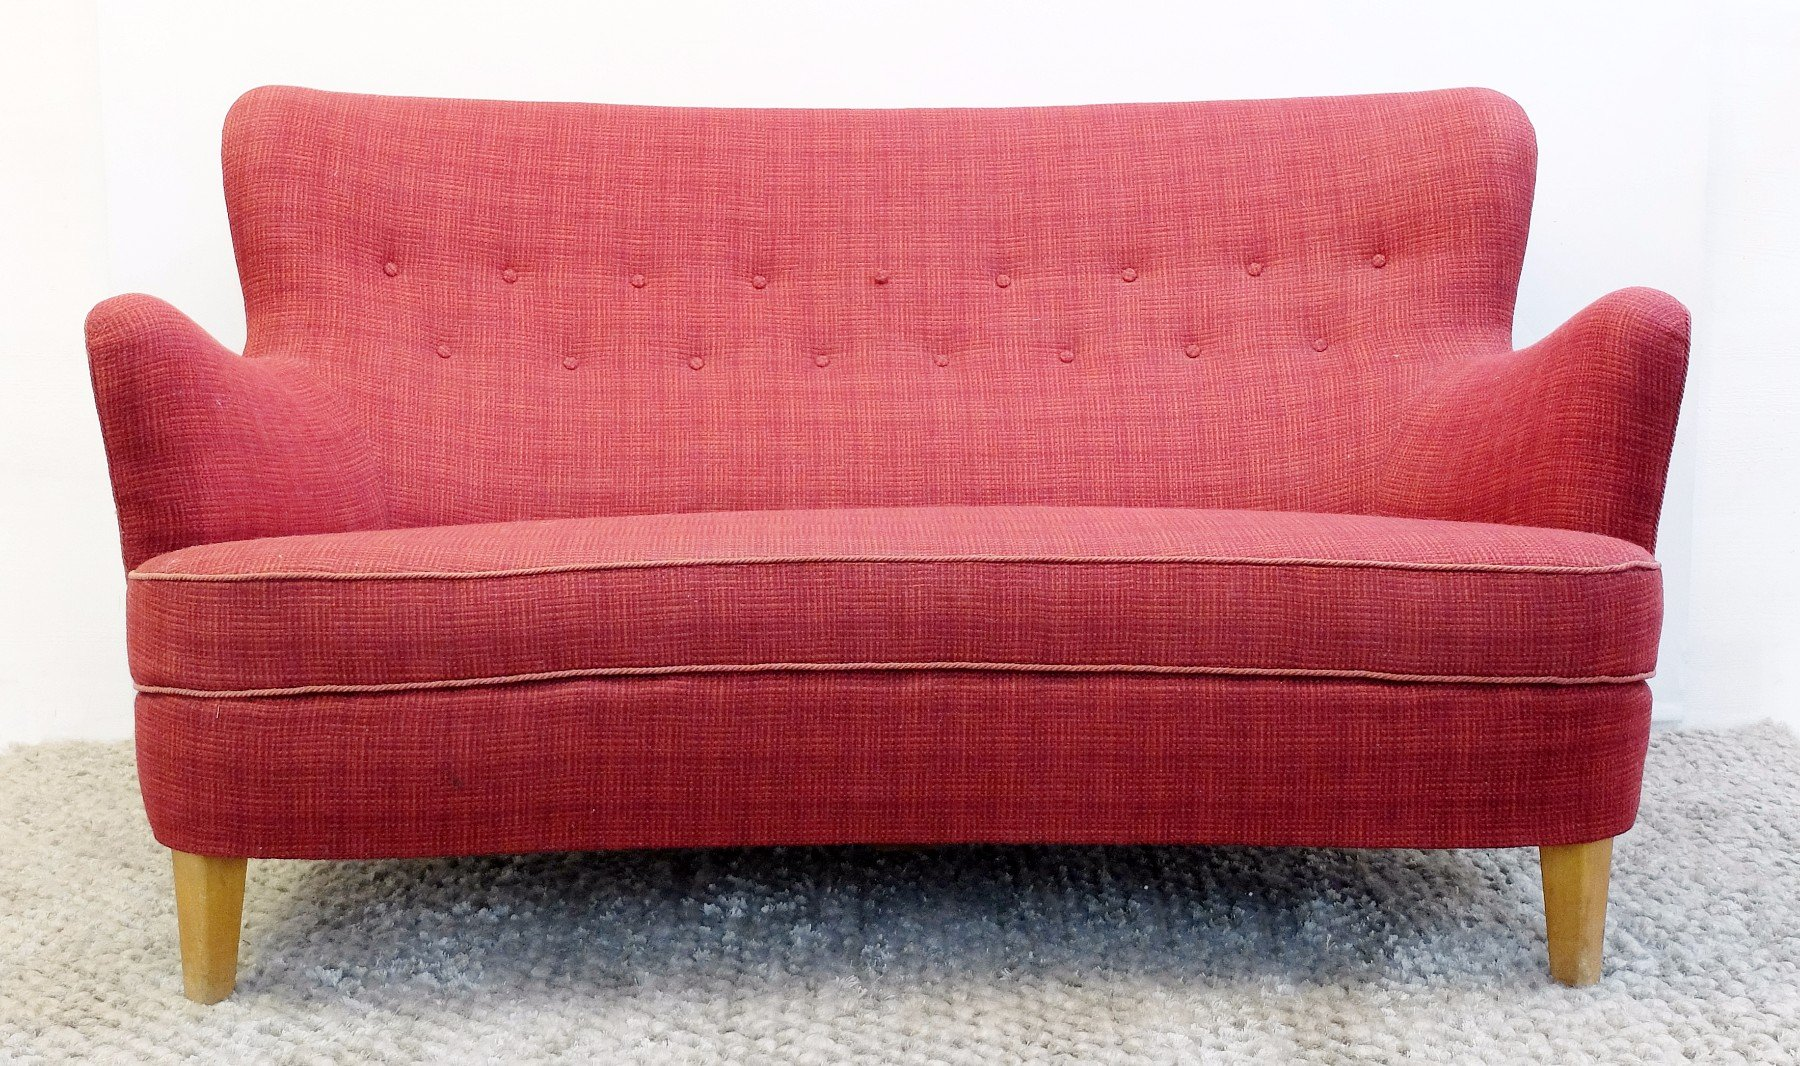 Vintage model samsas sofa by carl malmsten for o h sj gren for sale at pamono Carl malmsten sofa